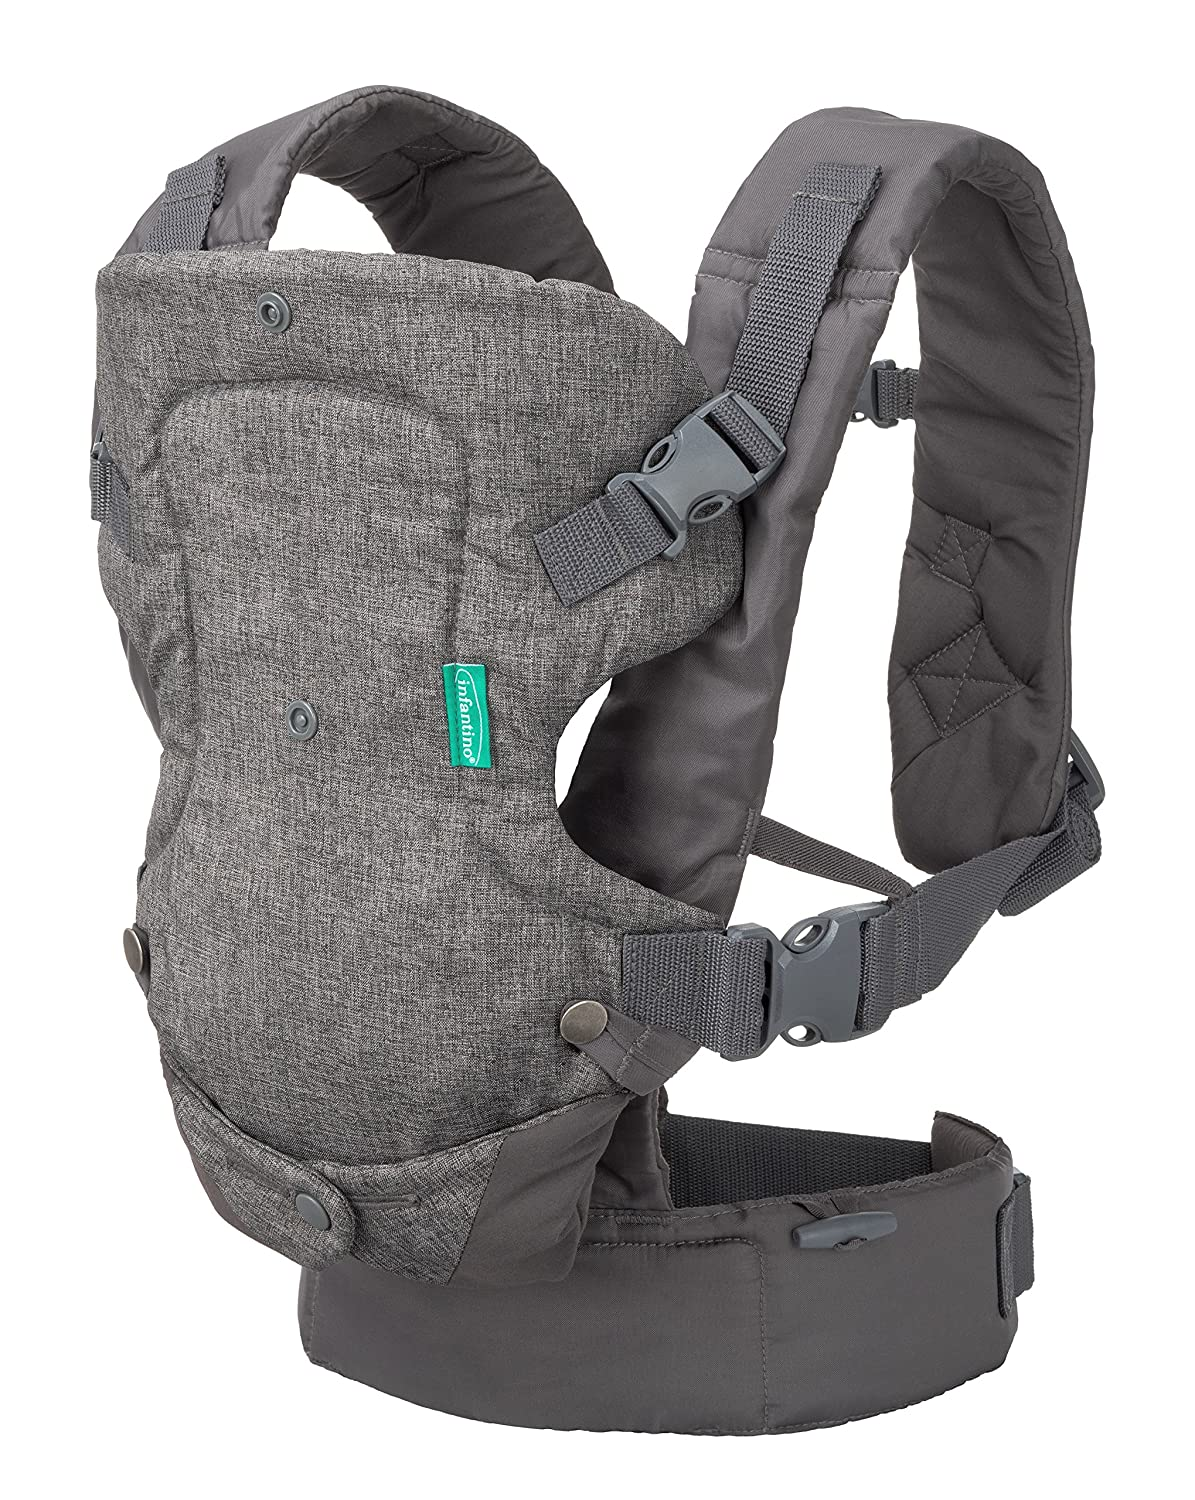 the best baby carrier in india